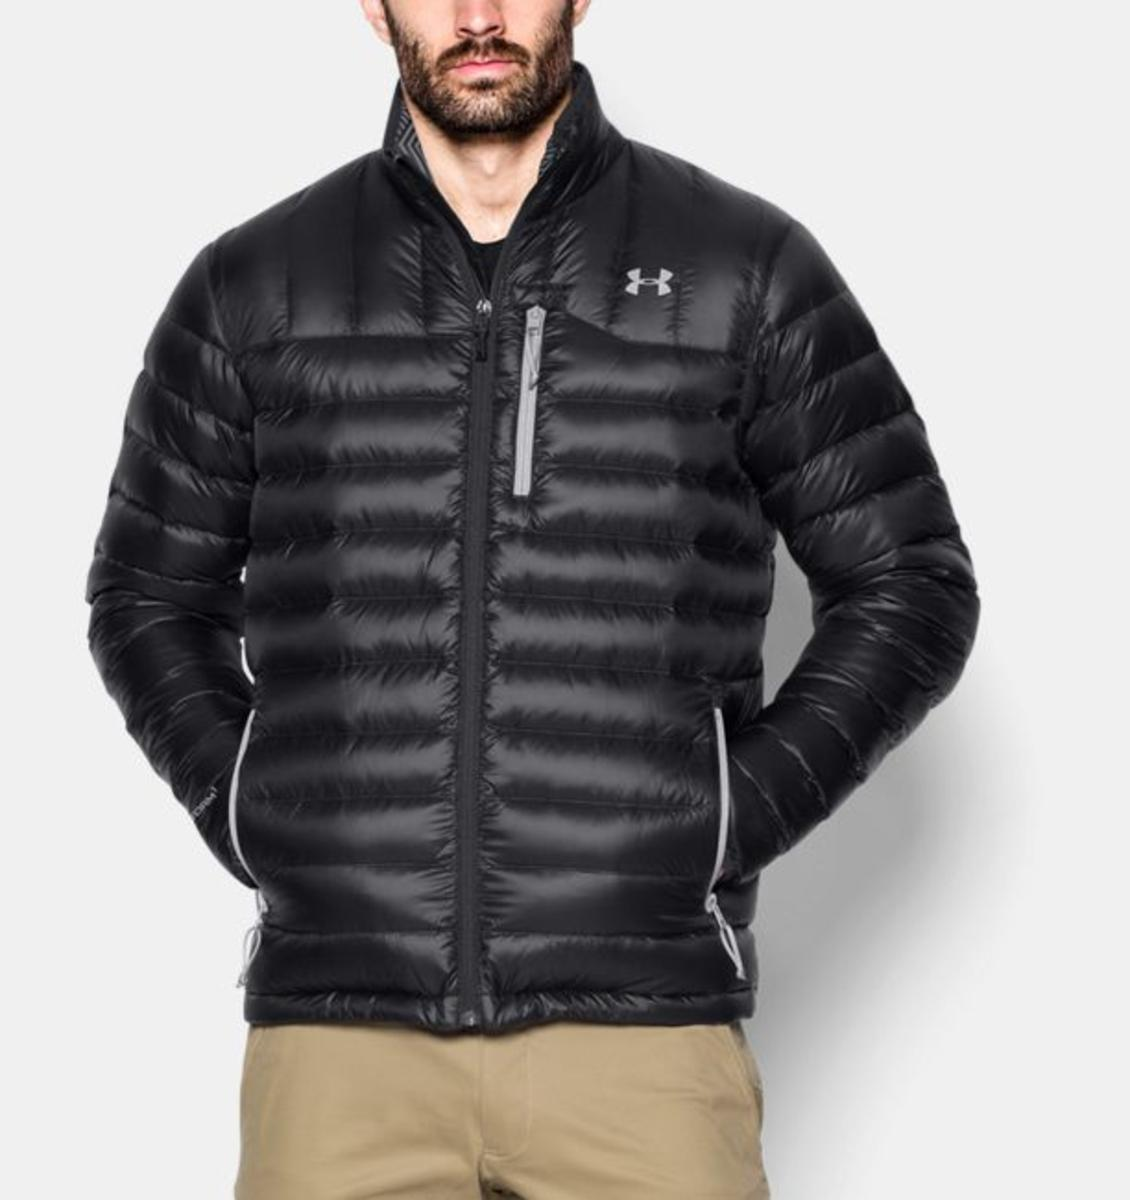 1ce426a41 Under Armour Men's UA Storm ColdGear Infrared Turing Jacket - The Warming  Store